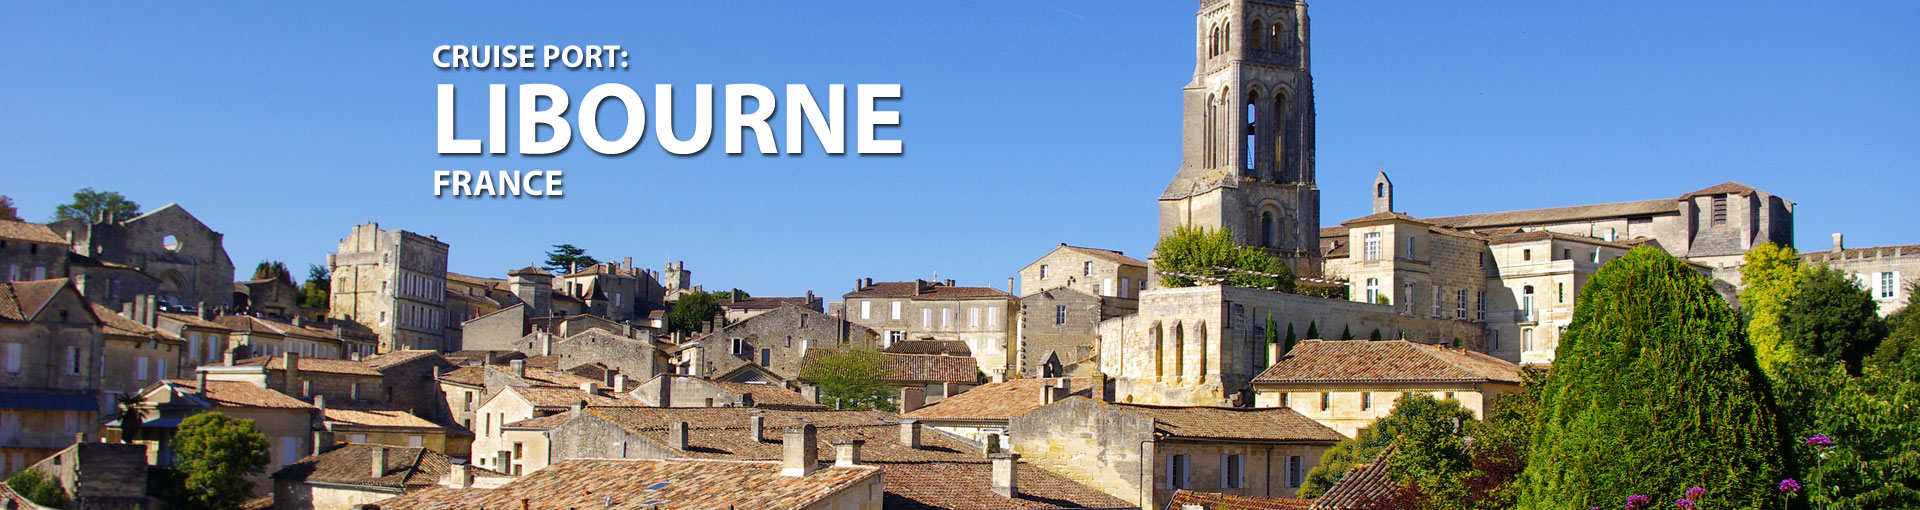 Cruises to Libourne, France